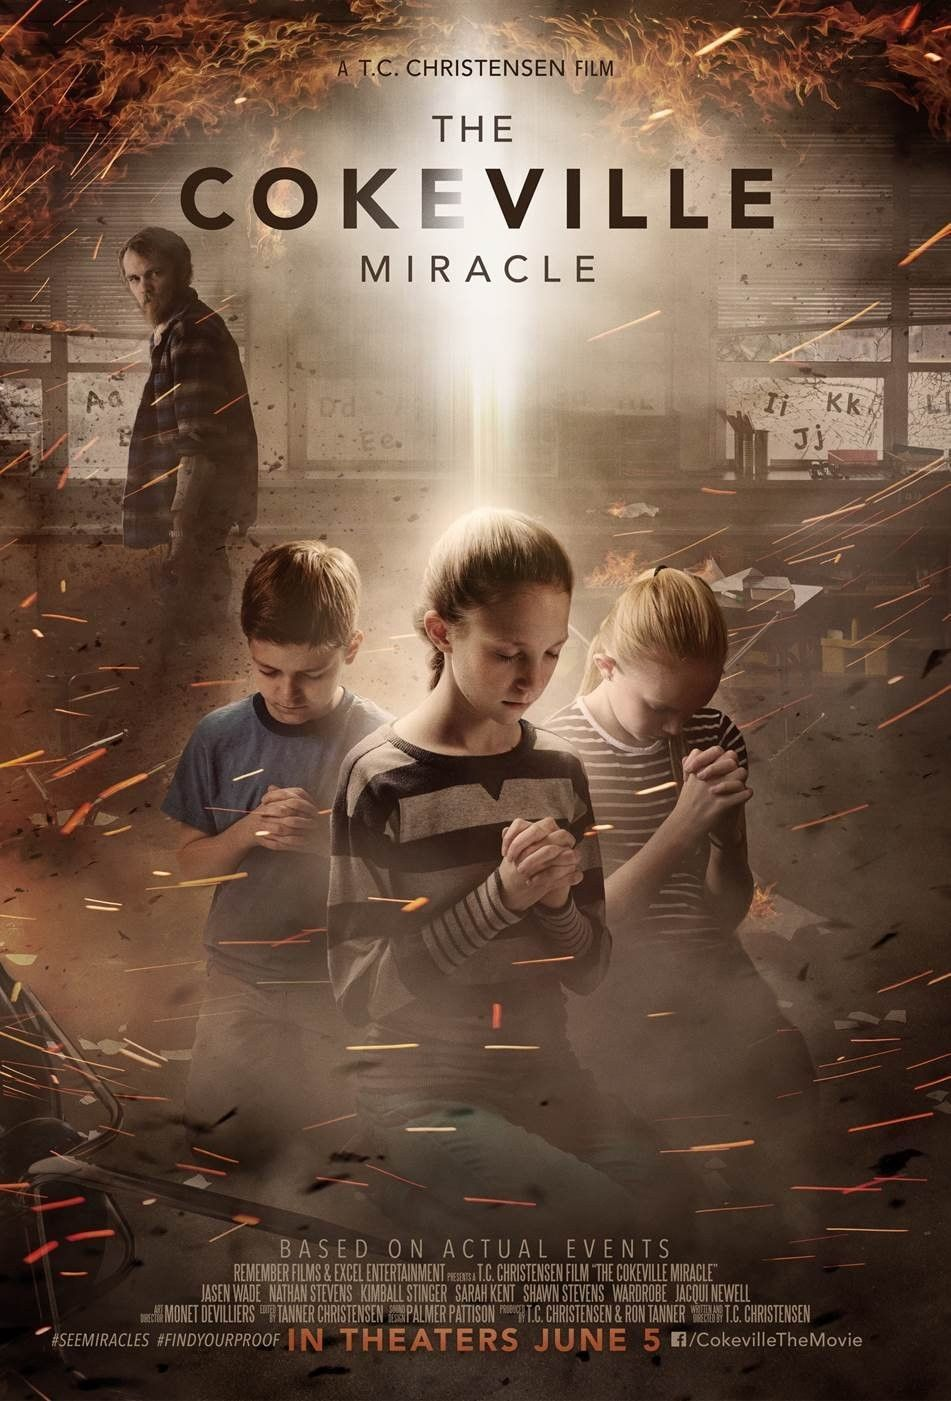 The Cokeville Miracle Dvd Dbd 5139140 From Deseret Book Available On Ldsbookstore Com Christian Movies Lds Movies Christian Films